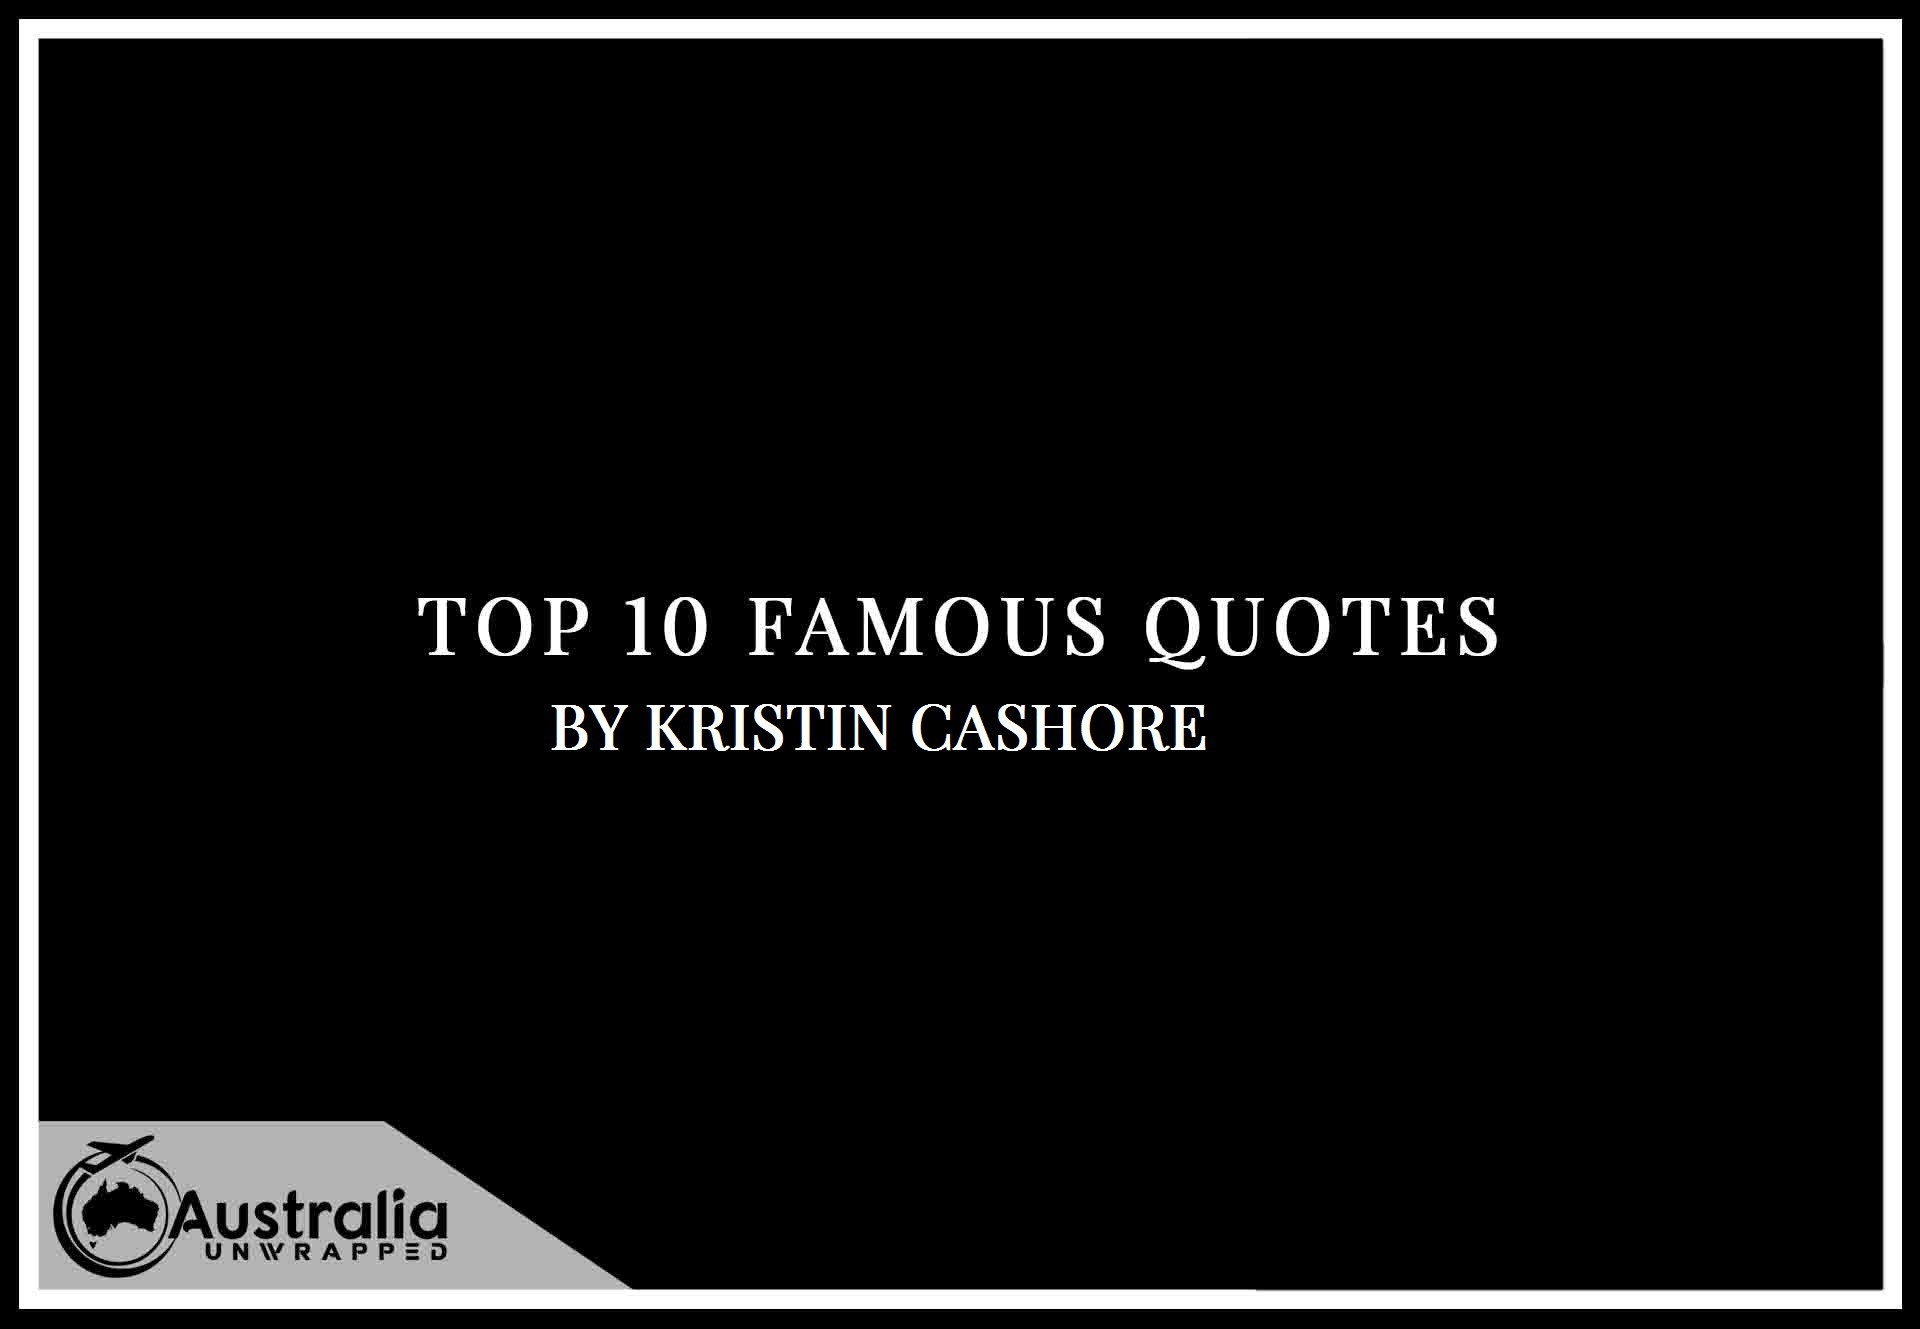 Kristin Cashore's Top 10 Popular and Famous Quotes